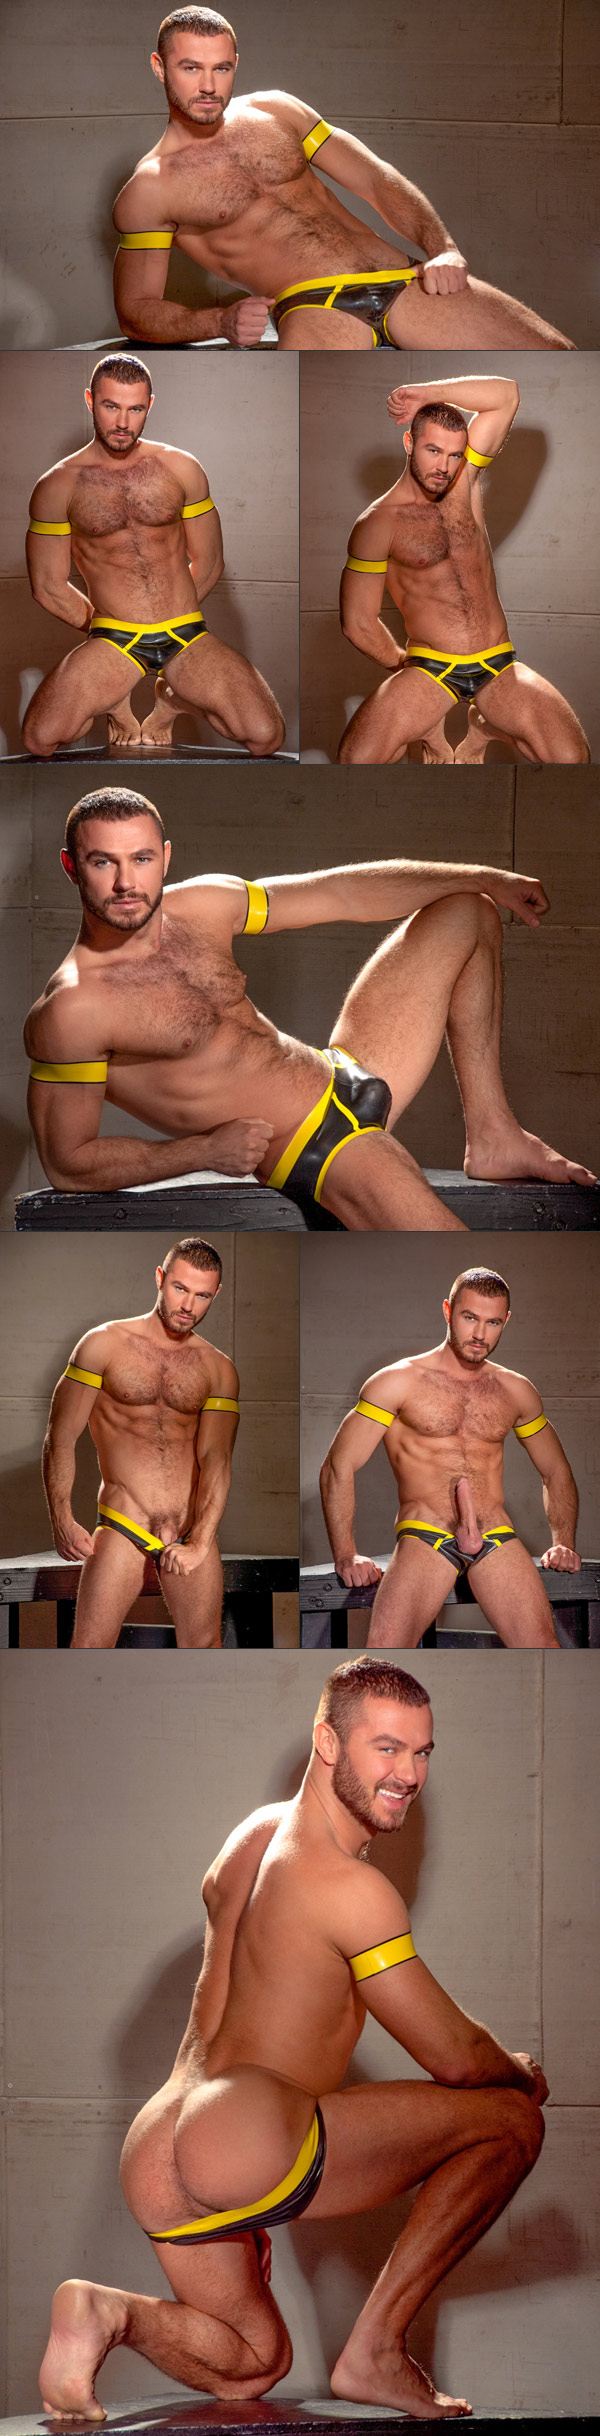 Pictures of Jessy Ares getting rubbered up in Slick